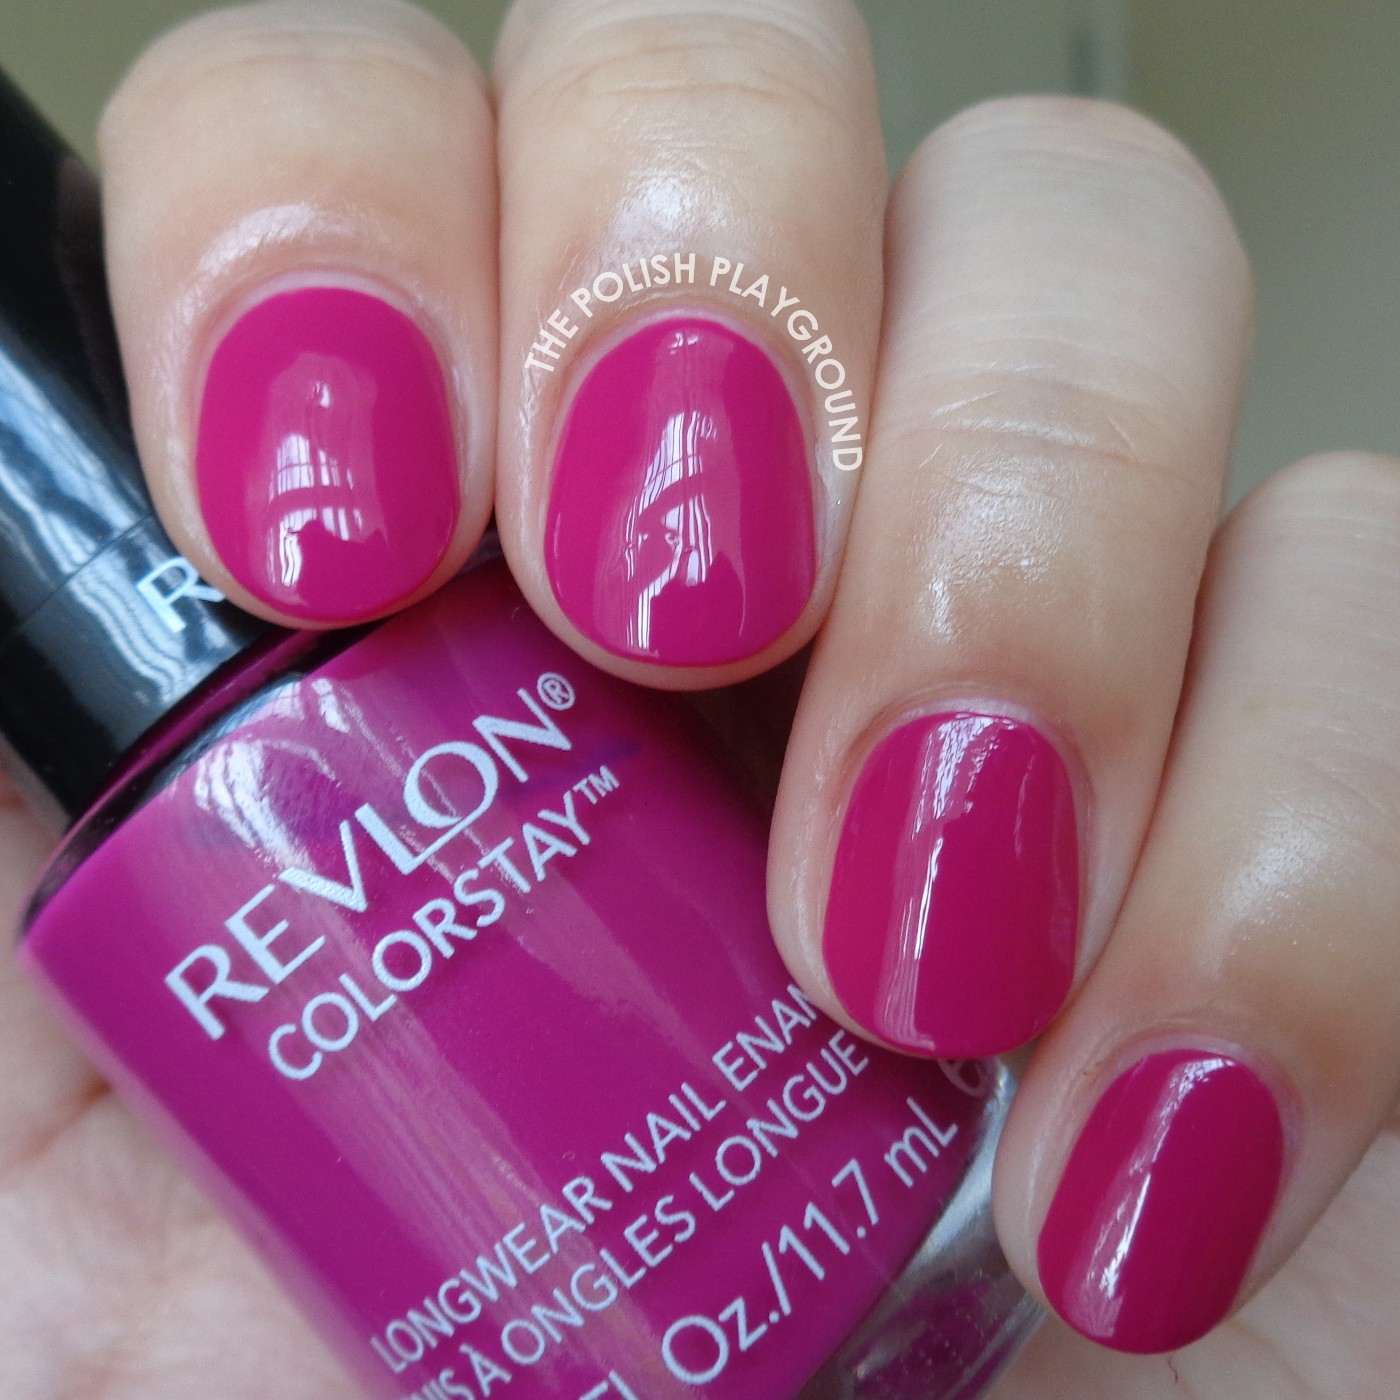 Revlon Colorstay Rich Raspberry